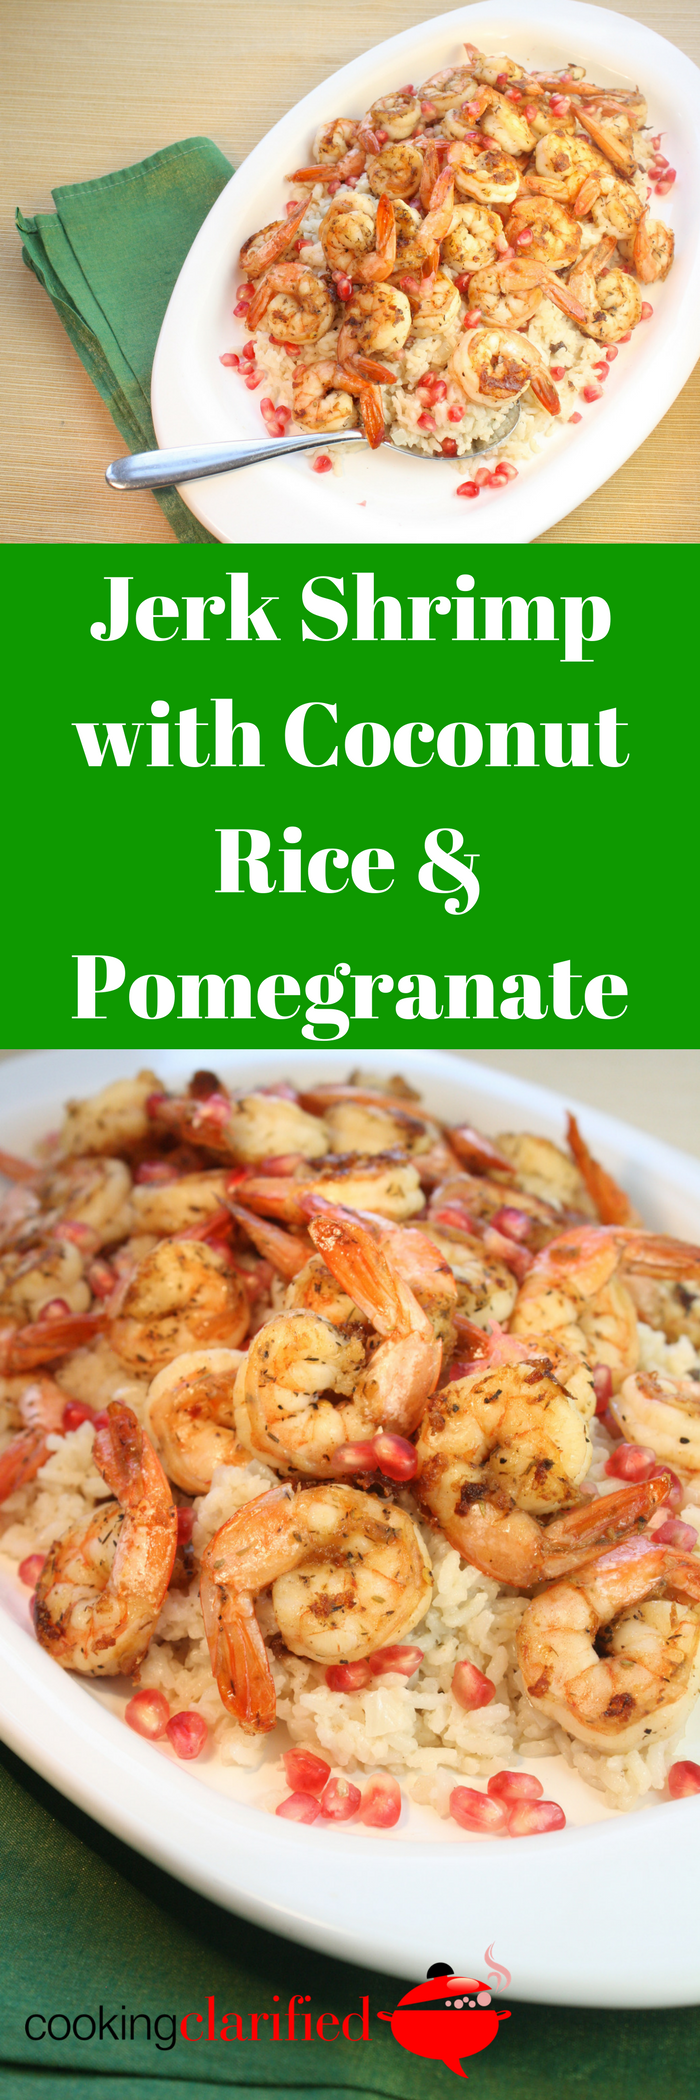 Jerk Shrimp with Coconut Rice & Pomegranate – Cooking Clarified